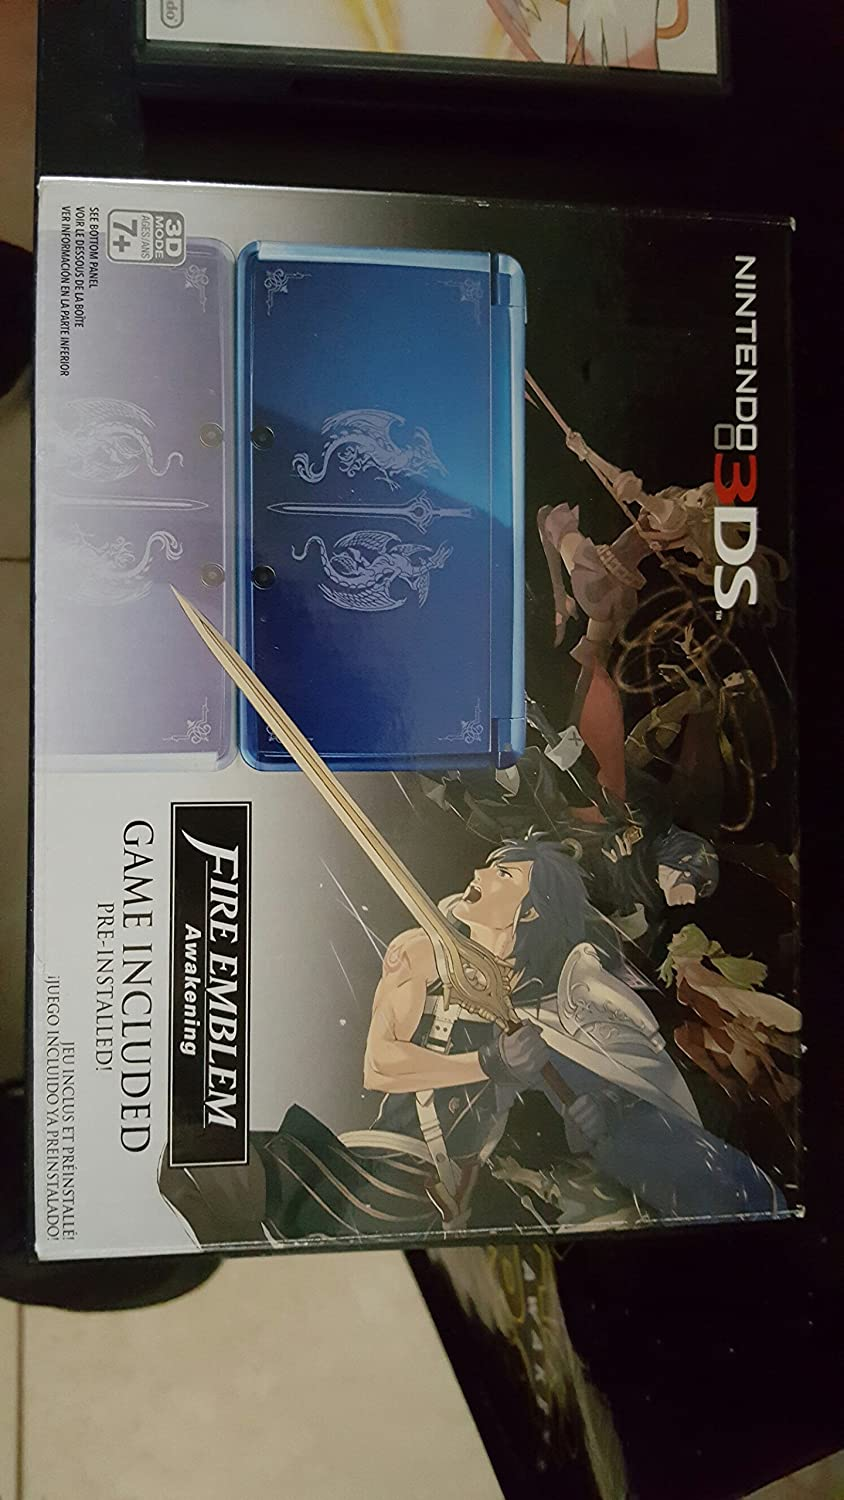 Nintendo 3DS Blue – Limited Edition with Fire Emblem Awakening Pre-Installed